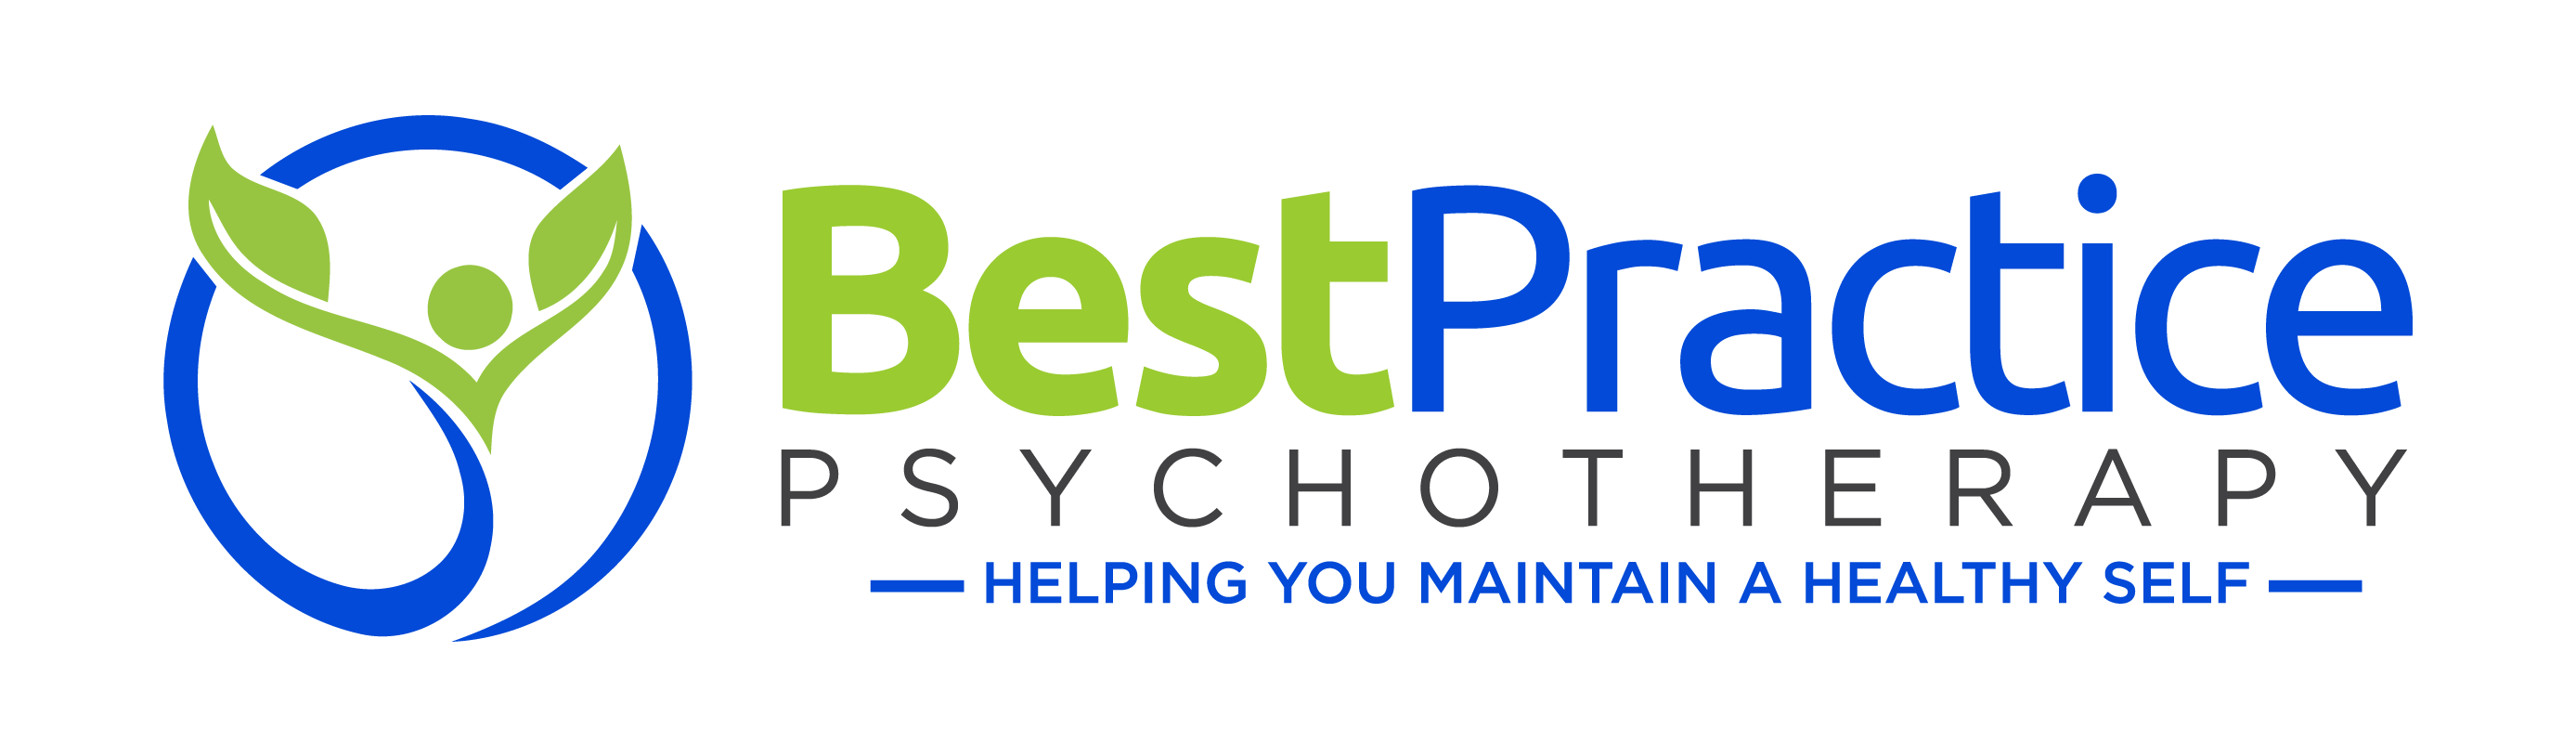 Best Practice Psychotherapy, LLC